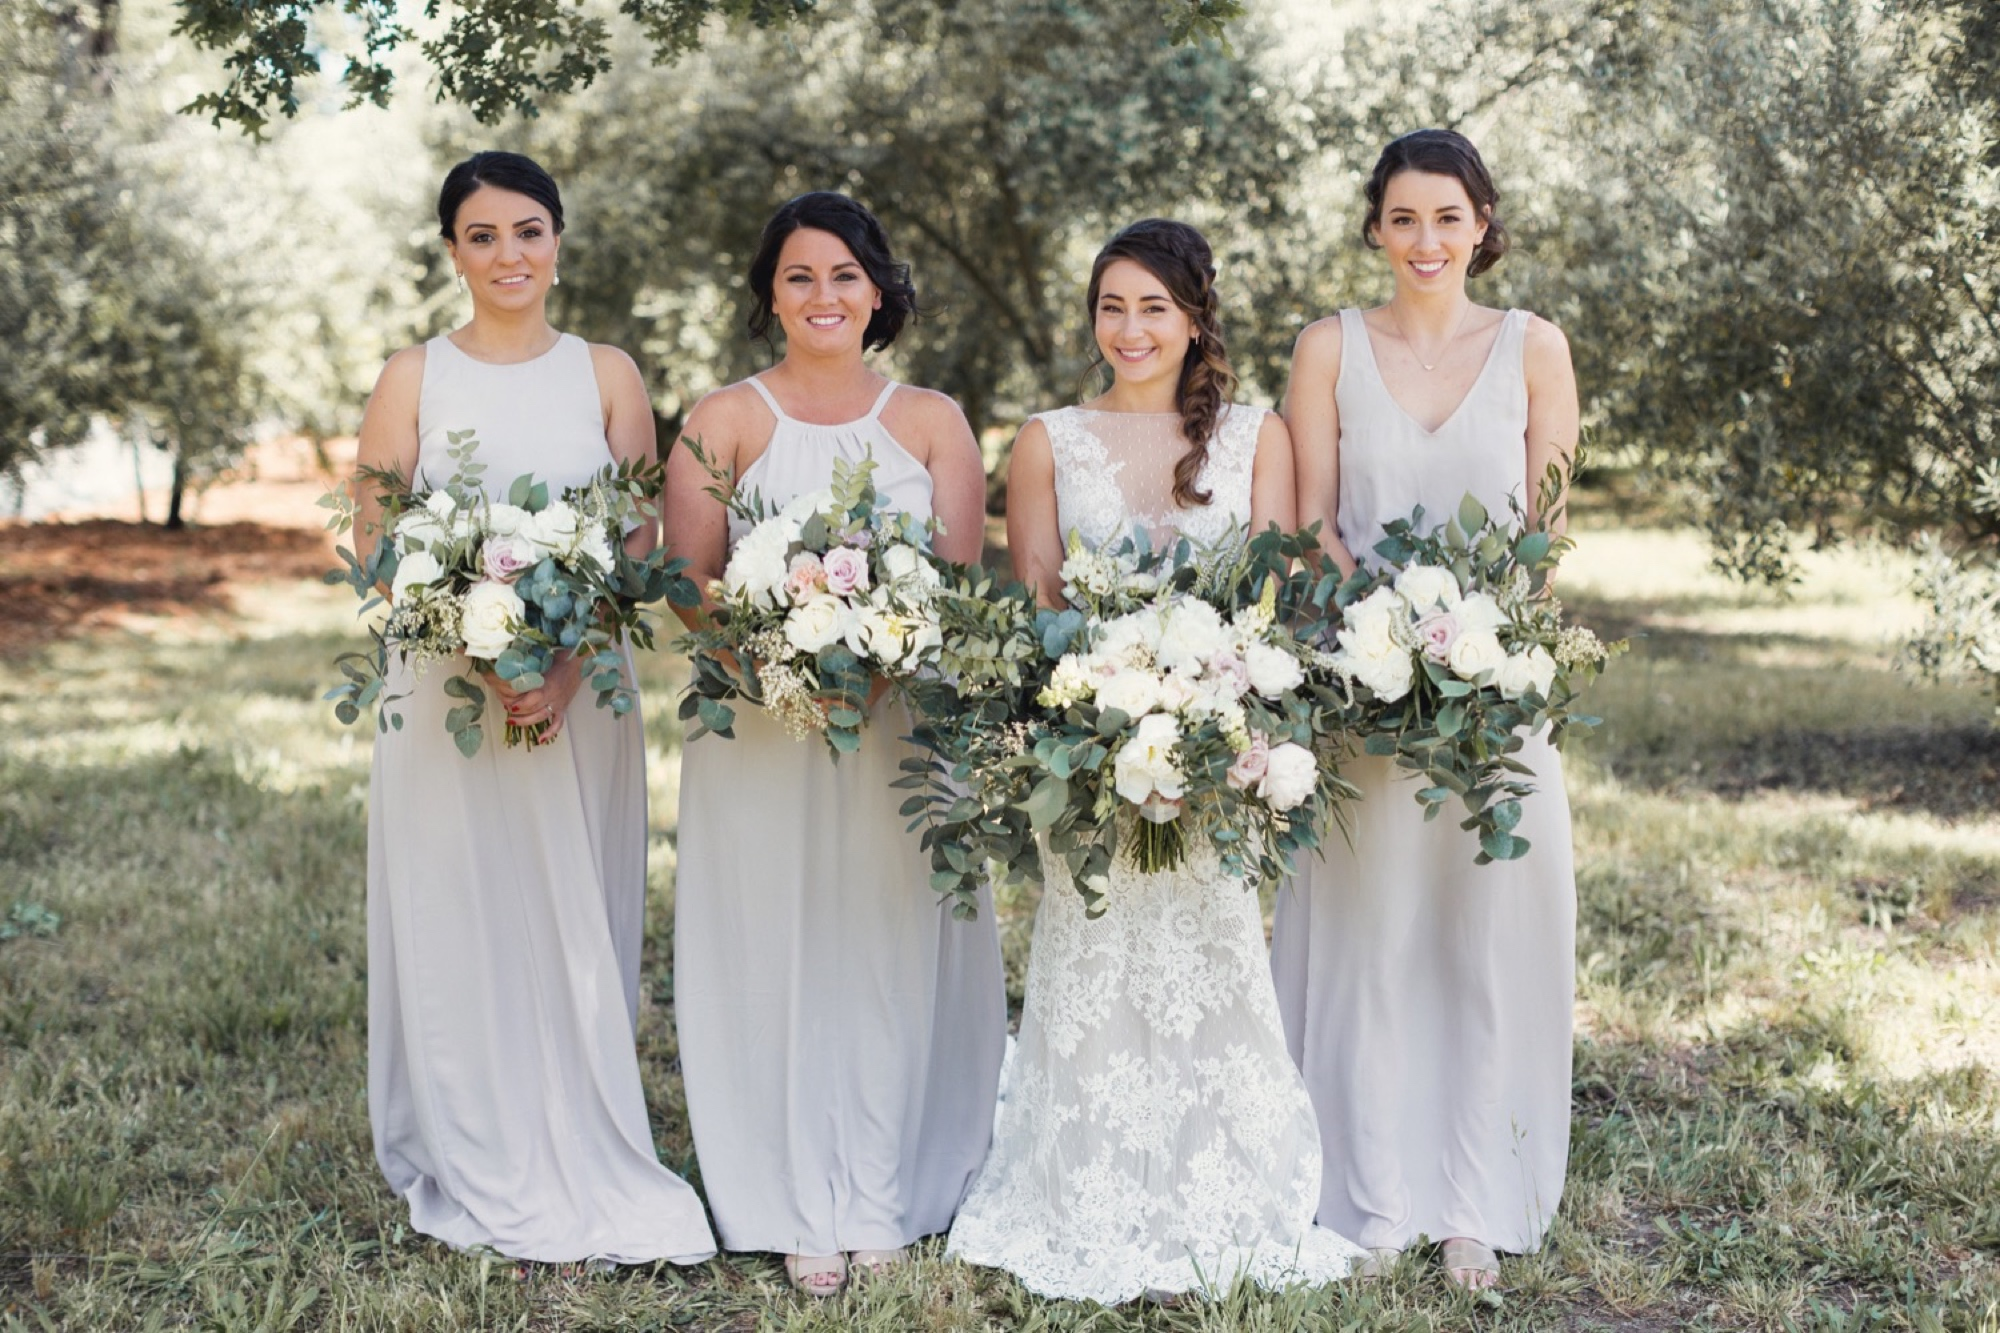 Campovida wedding photographer